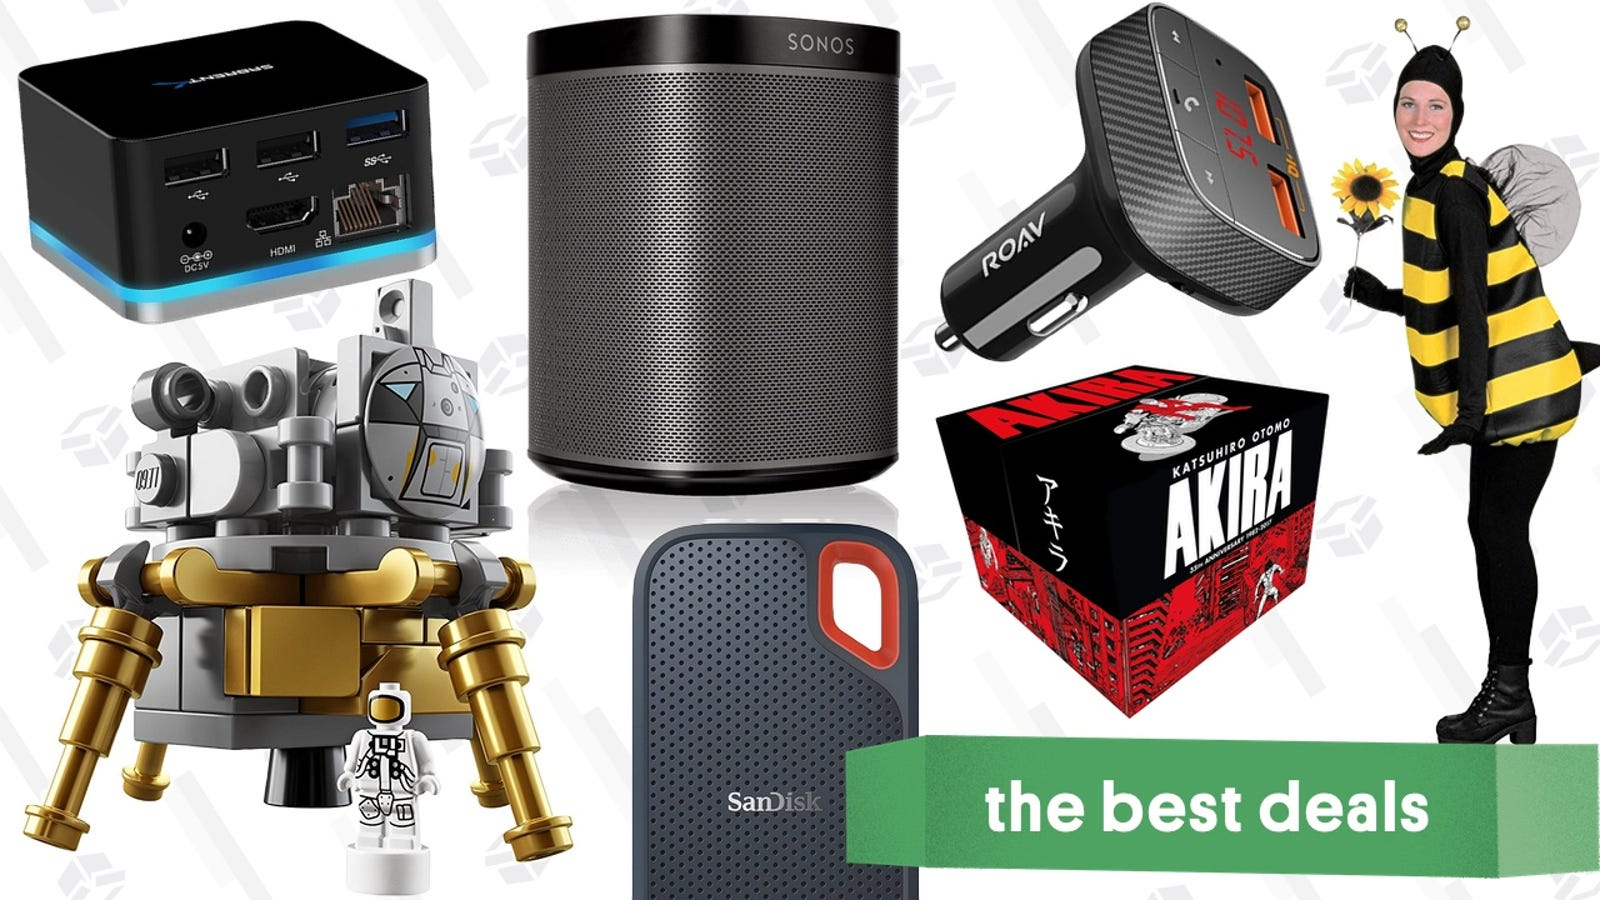 Monday's Best Deals: Halloween Costumes, Sonos Play:1, LEGO Apollo, Akira, and More